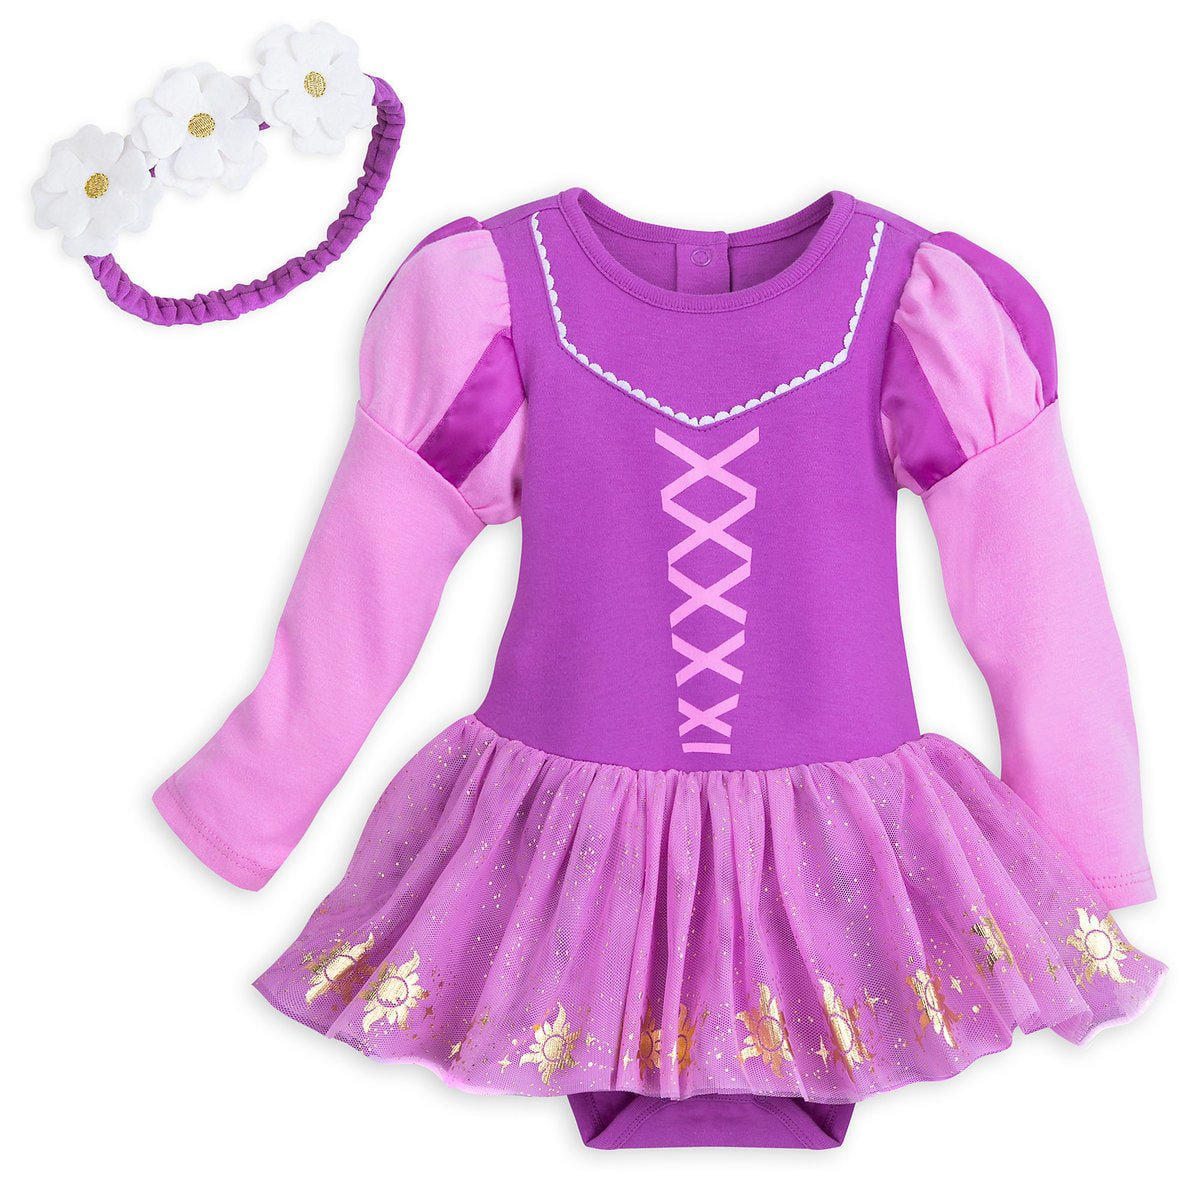 Disney Store Rapunzel Baby Costume 18-24 Months 2018 New